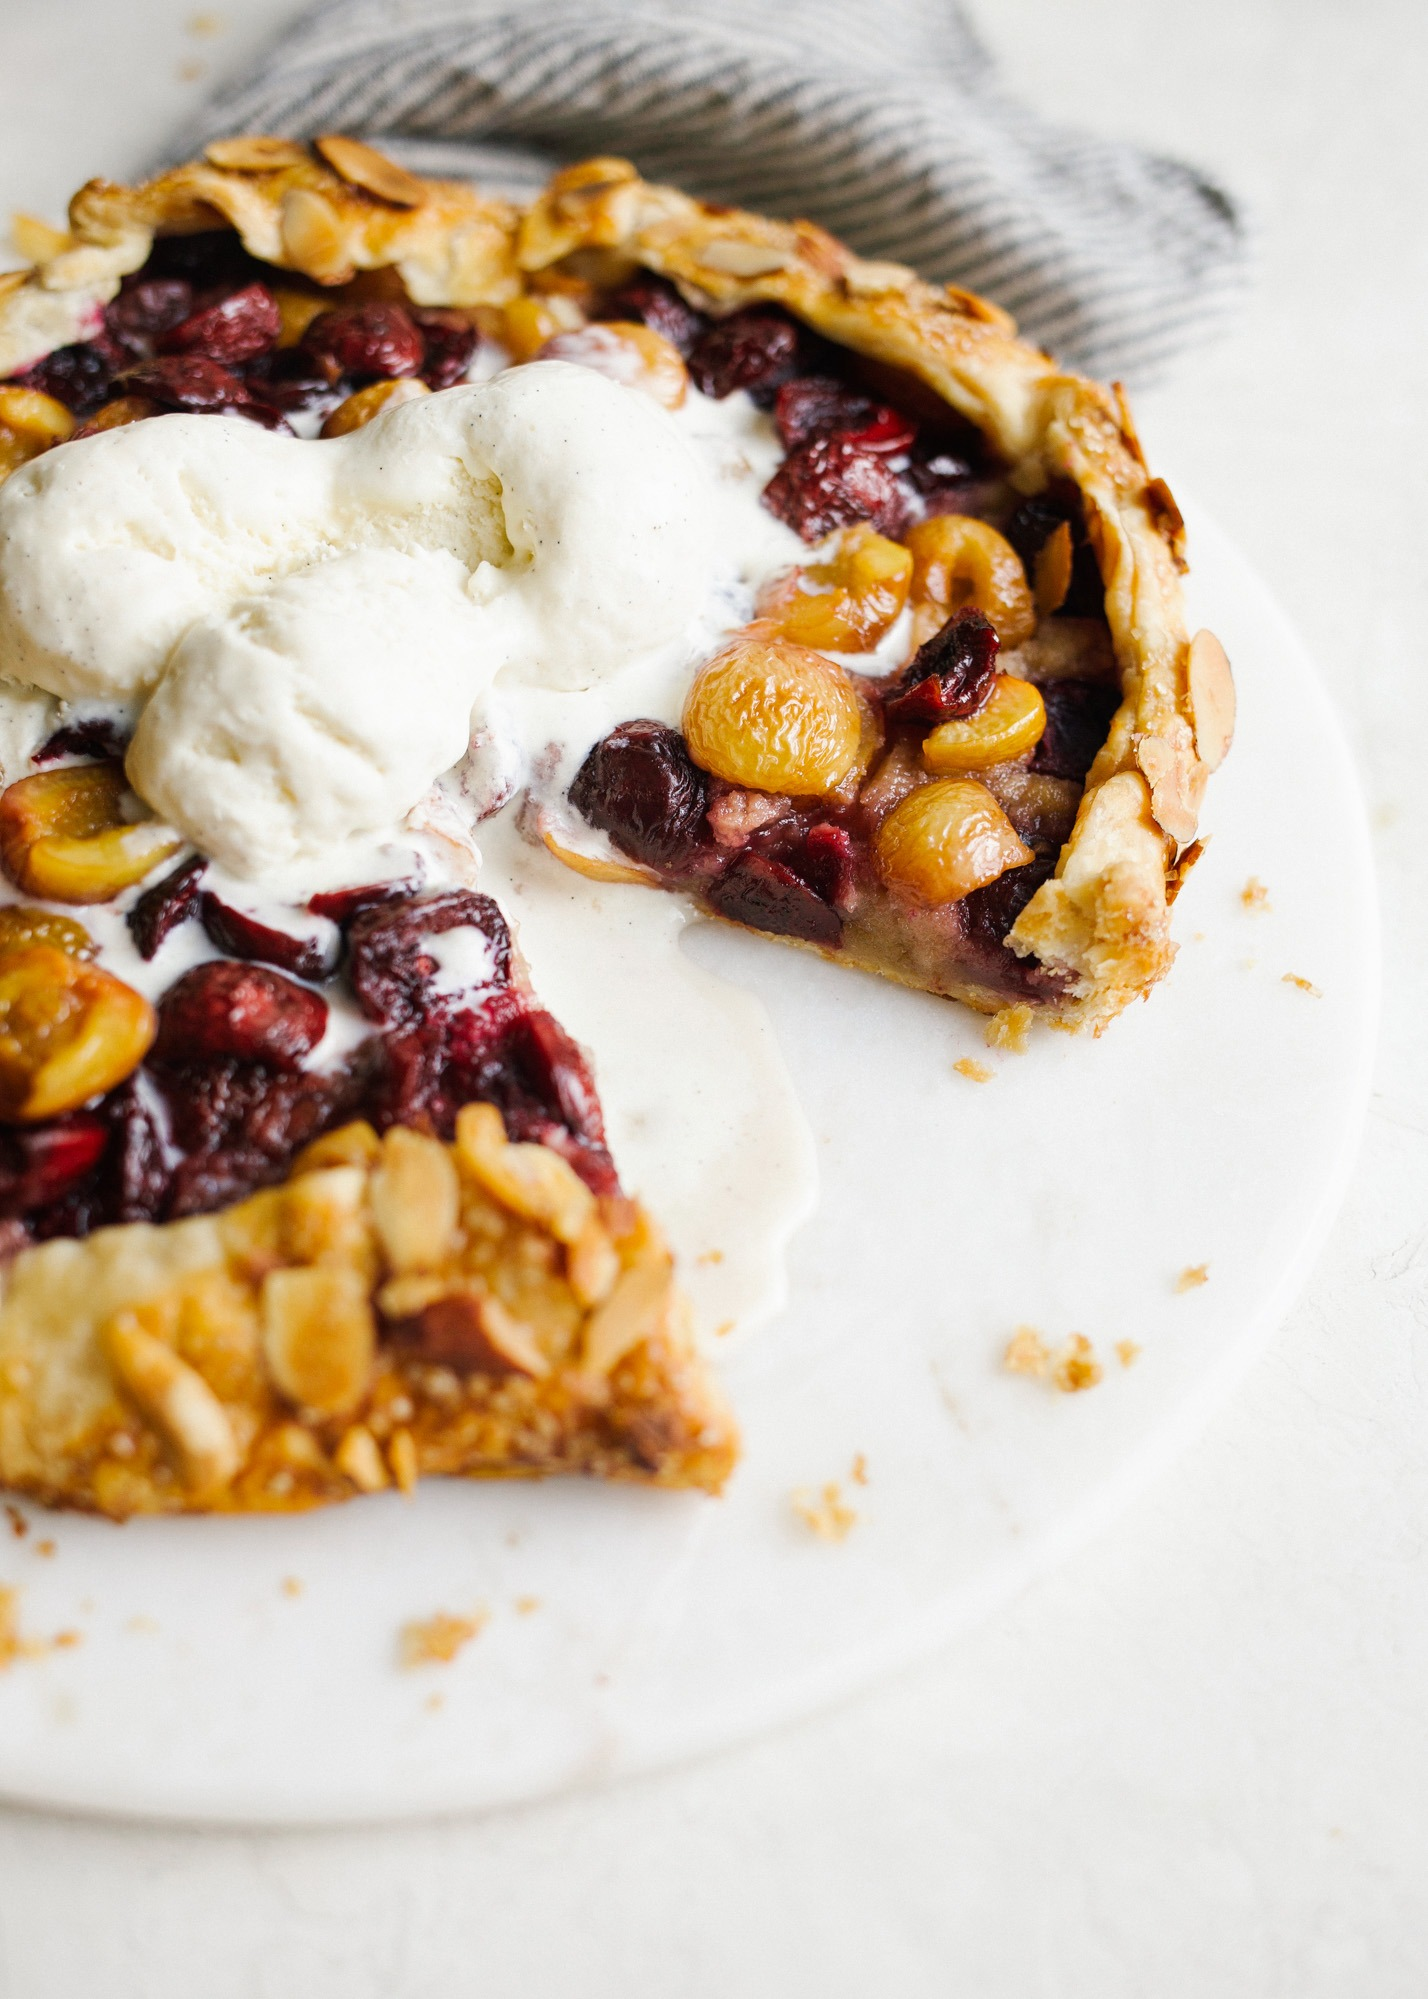 Cherry Almond Galette by Wood and Spoon. This is an all-butter pie crust filled with seasonal rainier and dark cherries and an almond meal frangipane filing. Top with ice cream and serve wedge slices as a summer dessert perfect for picnics and parties. Find more about this simple pie recipe on thewoodandspoon.com